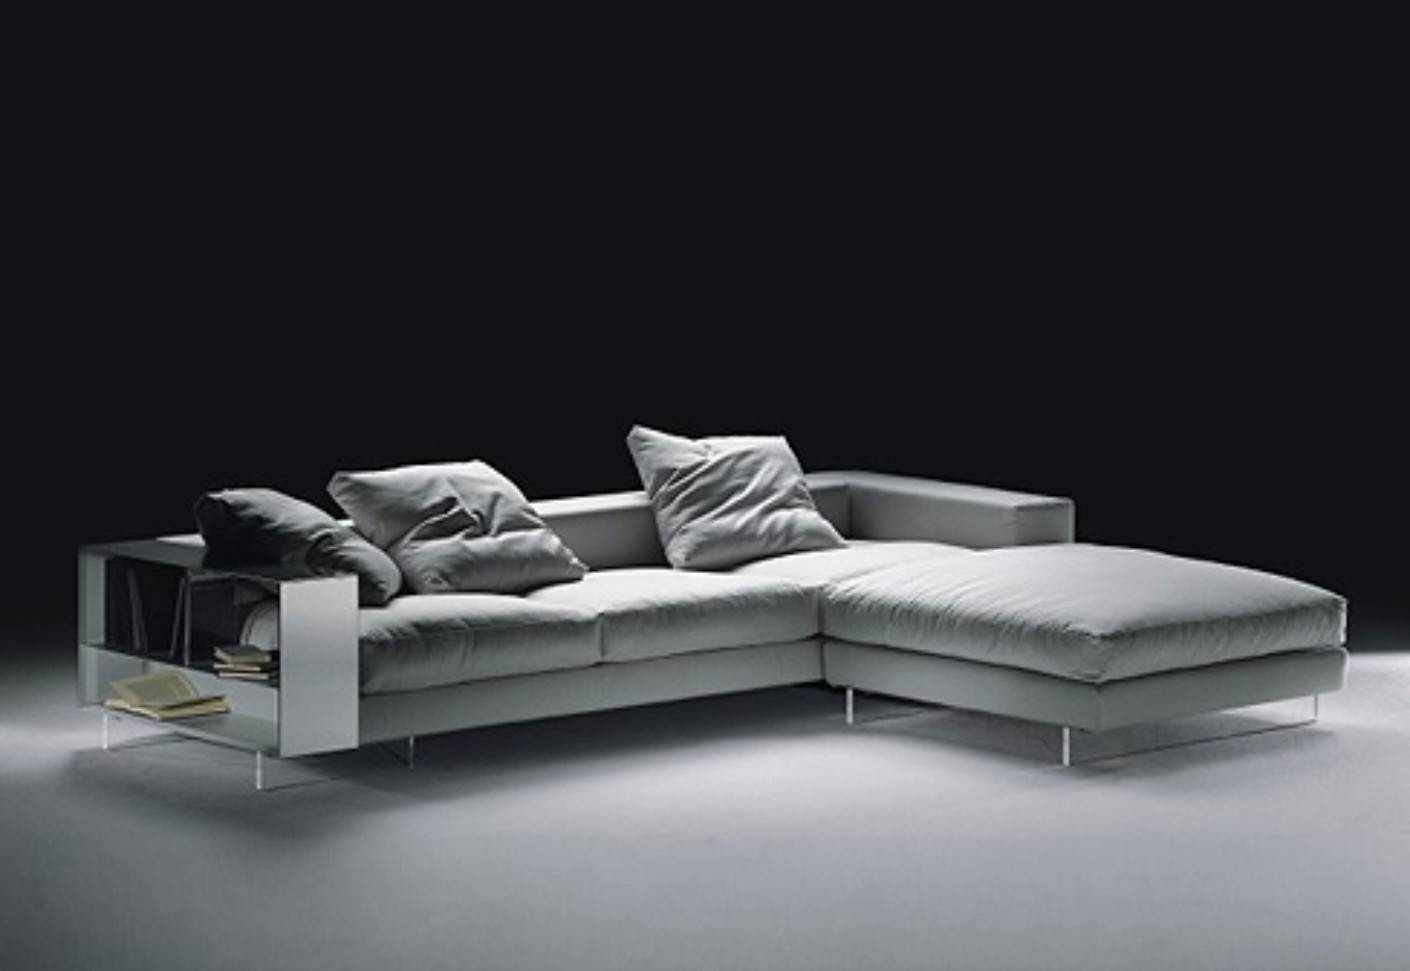 Lightpiece Sofaflexform | Stylepark pertaining to Flexform Sofas (Image 15 of 25)